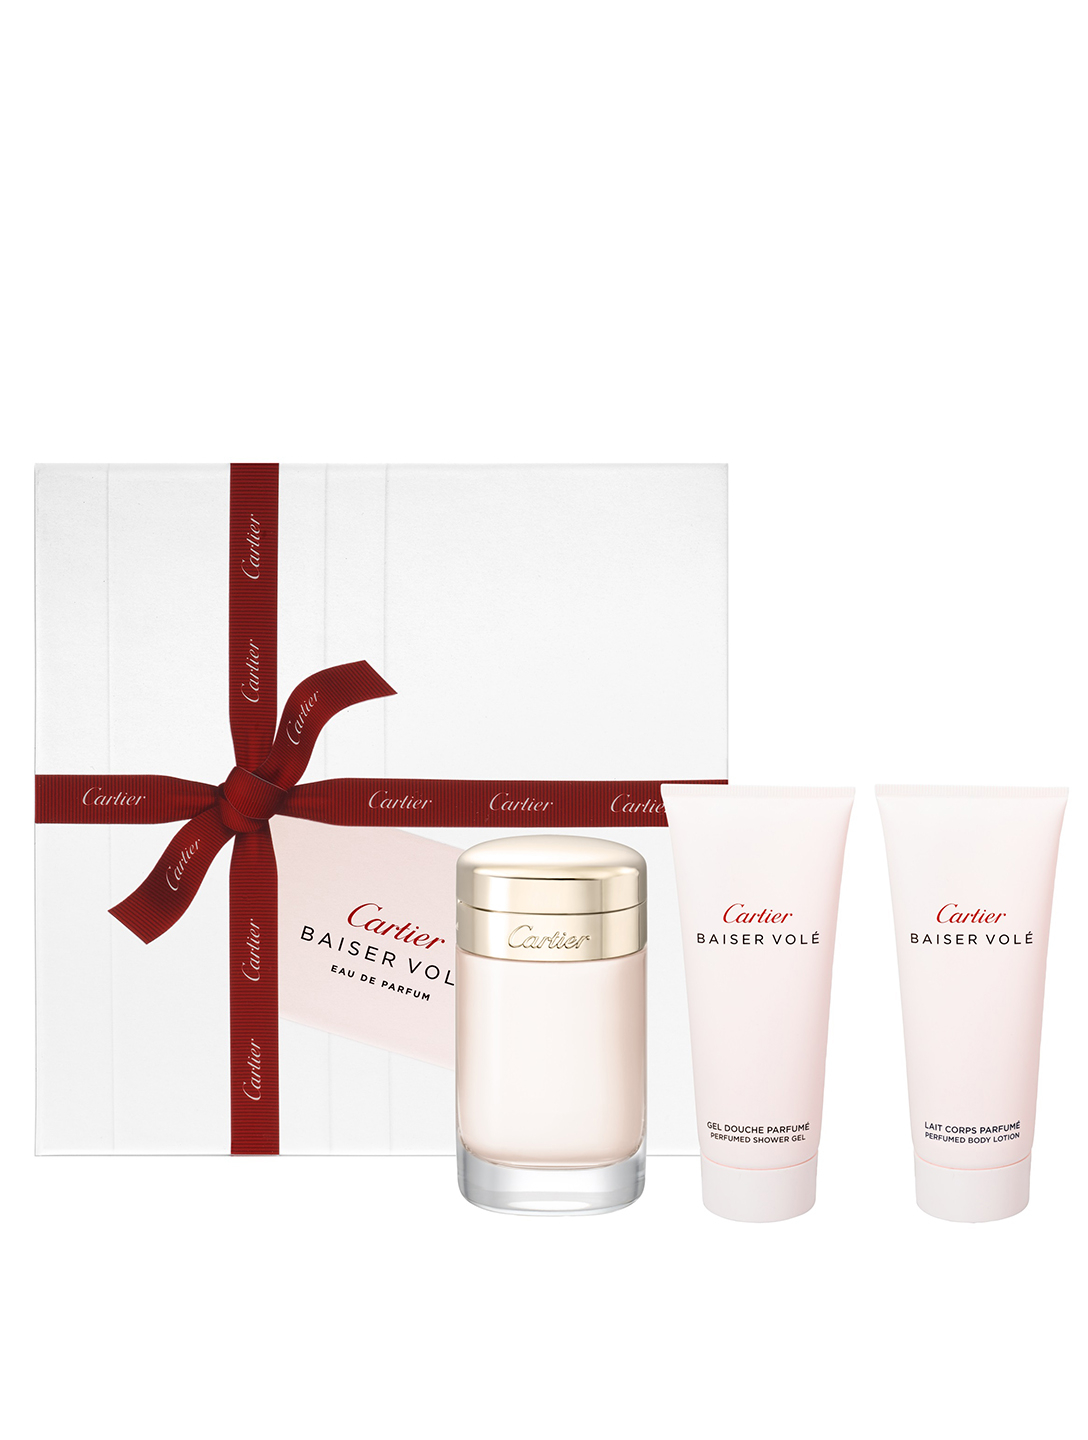 CARTIER Baisé Volé Eau de Parfum Set Beauty